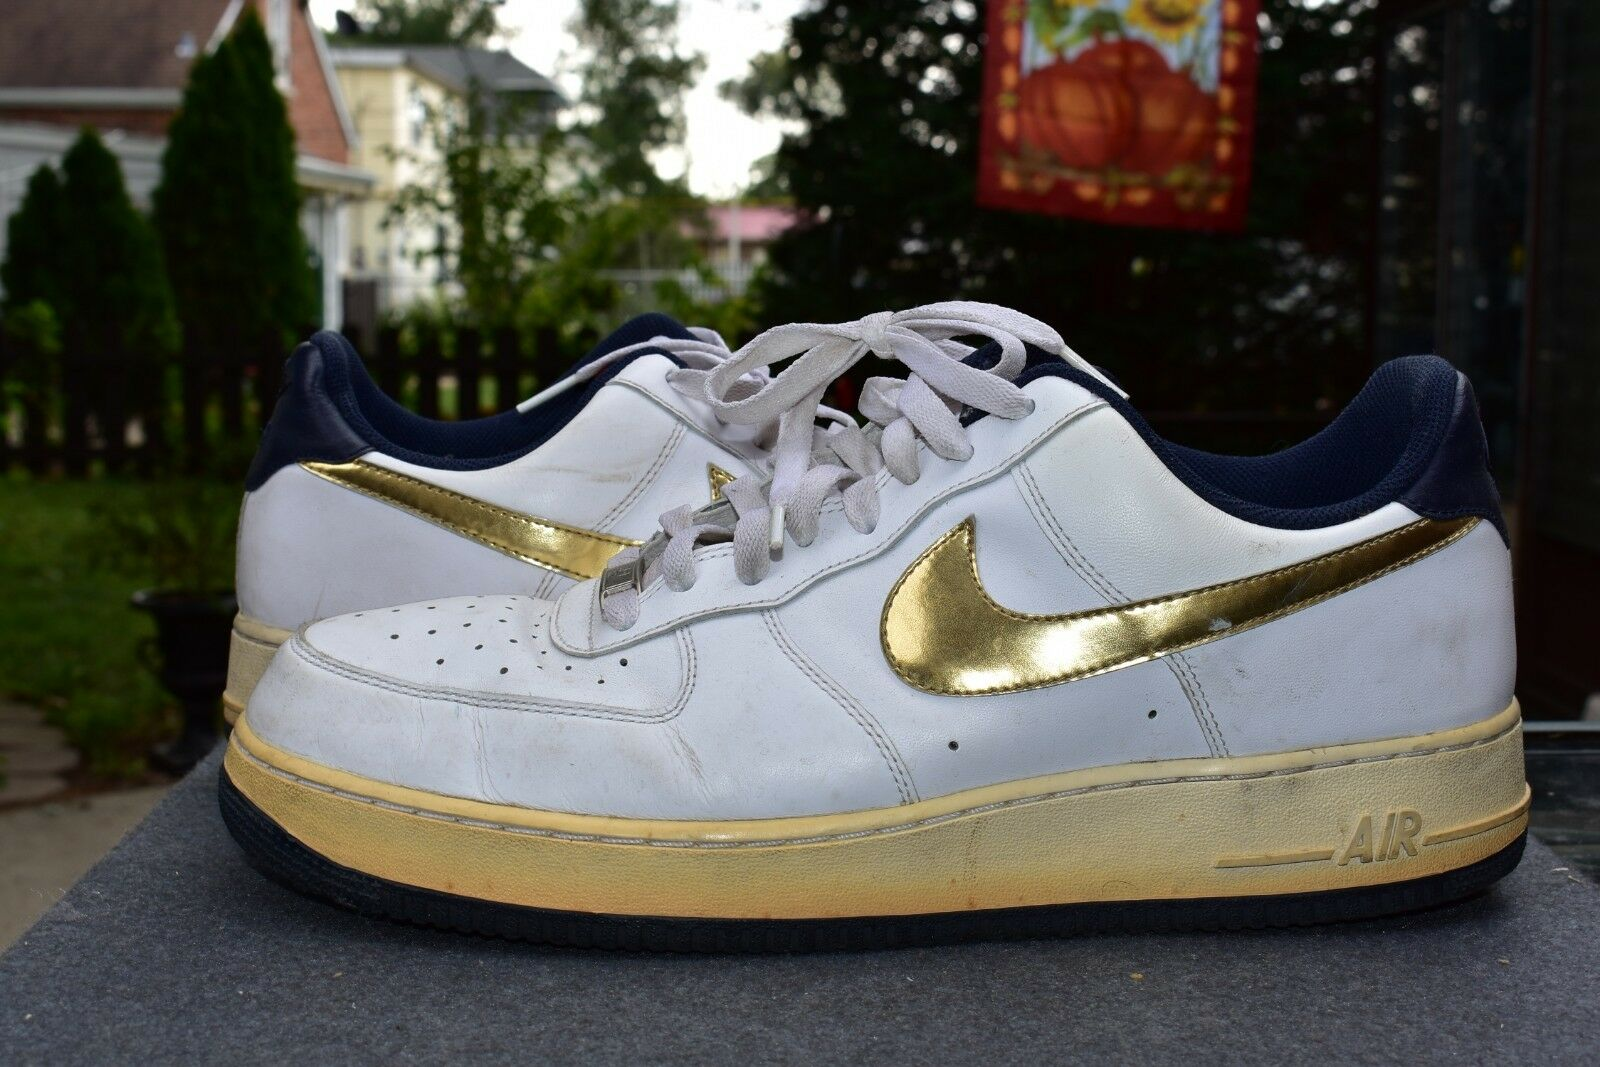 Nike Air Force 1 Olympic Gold Medal Low Top  315122-171 Men's Size 13